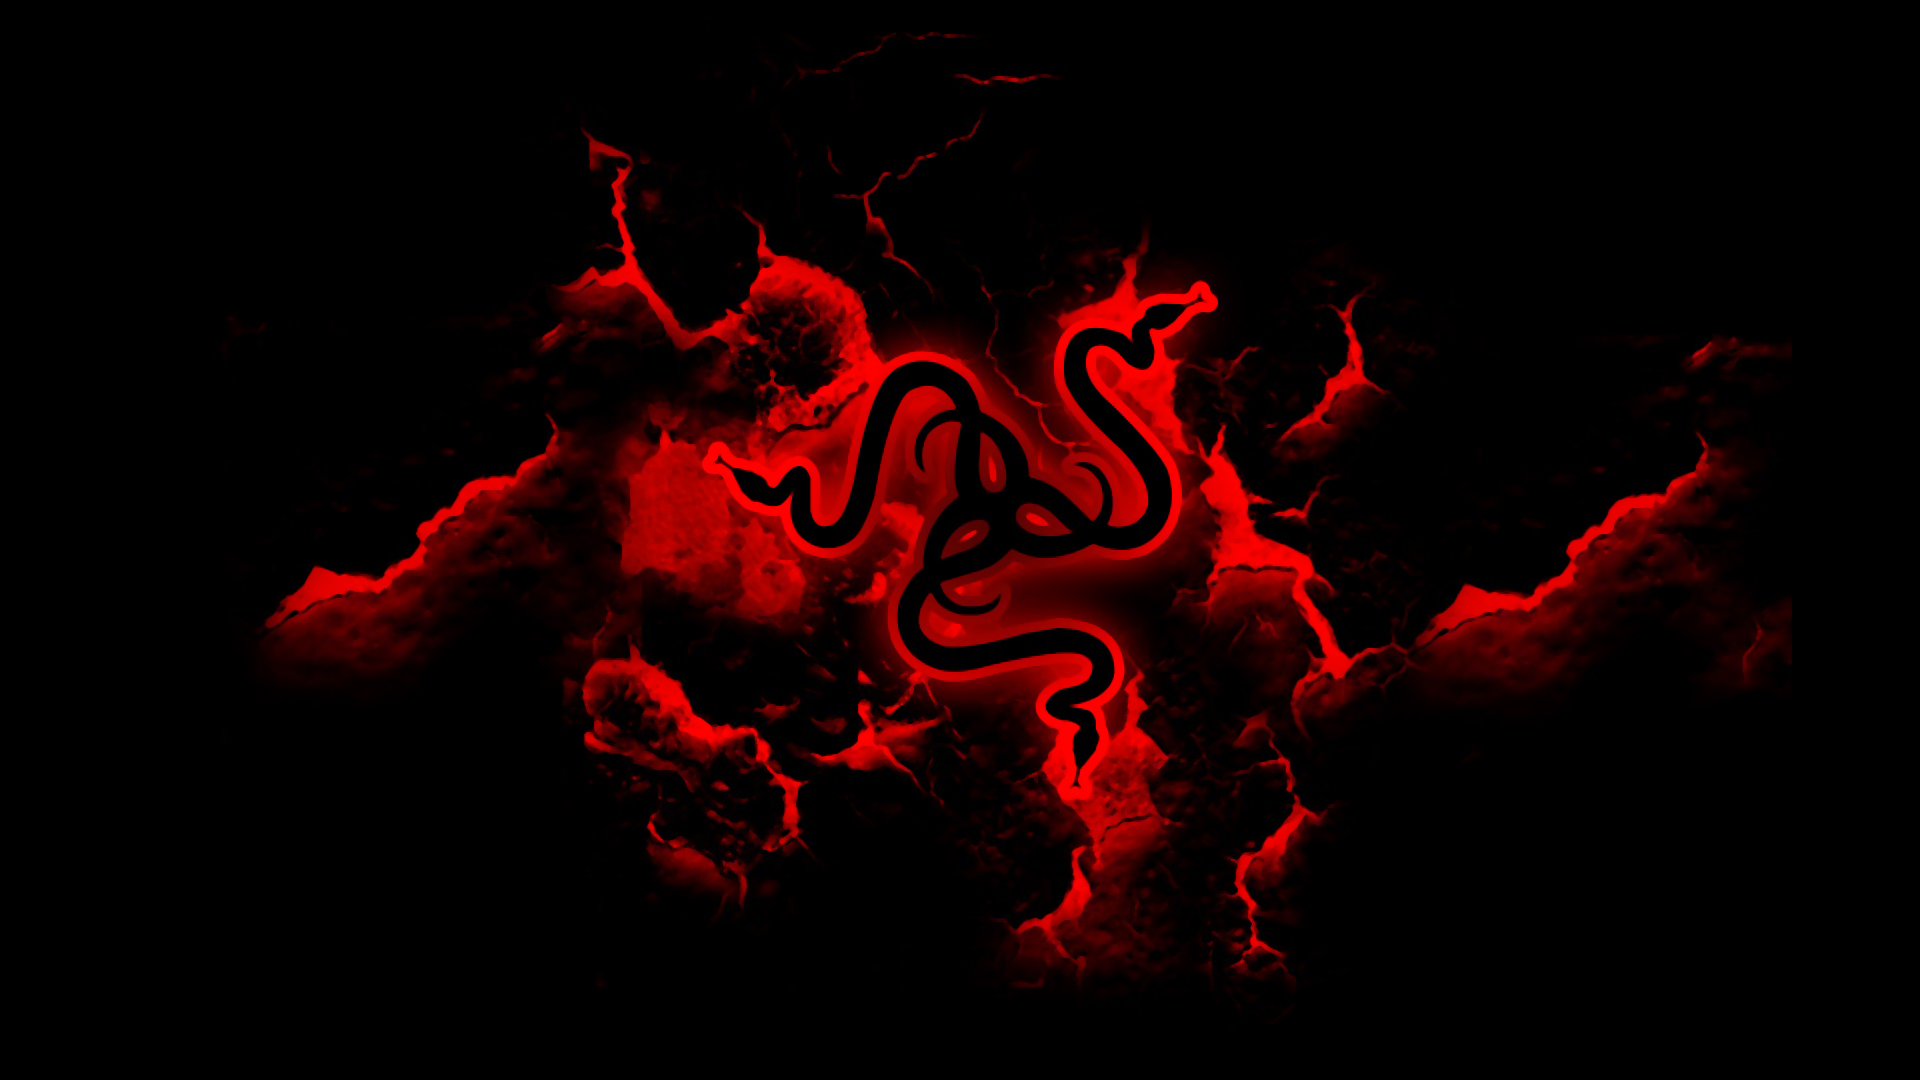 Cool Black And Red Backgrounds Razer red logo black 1920x1080